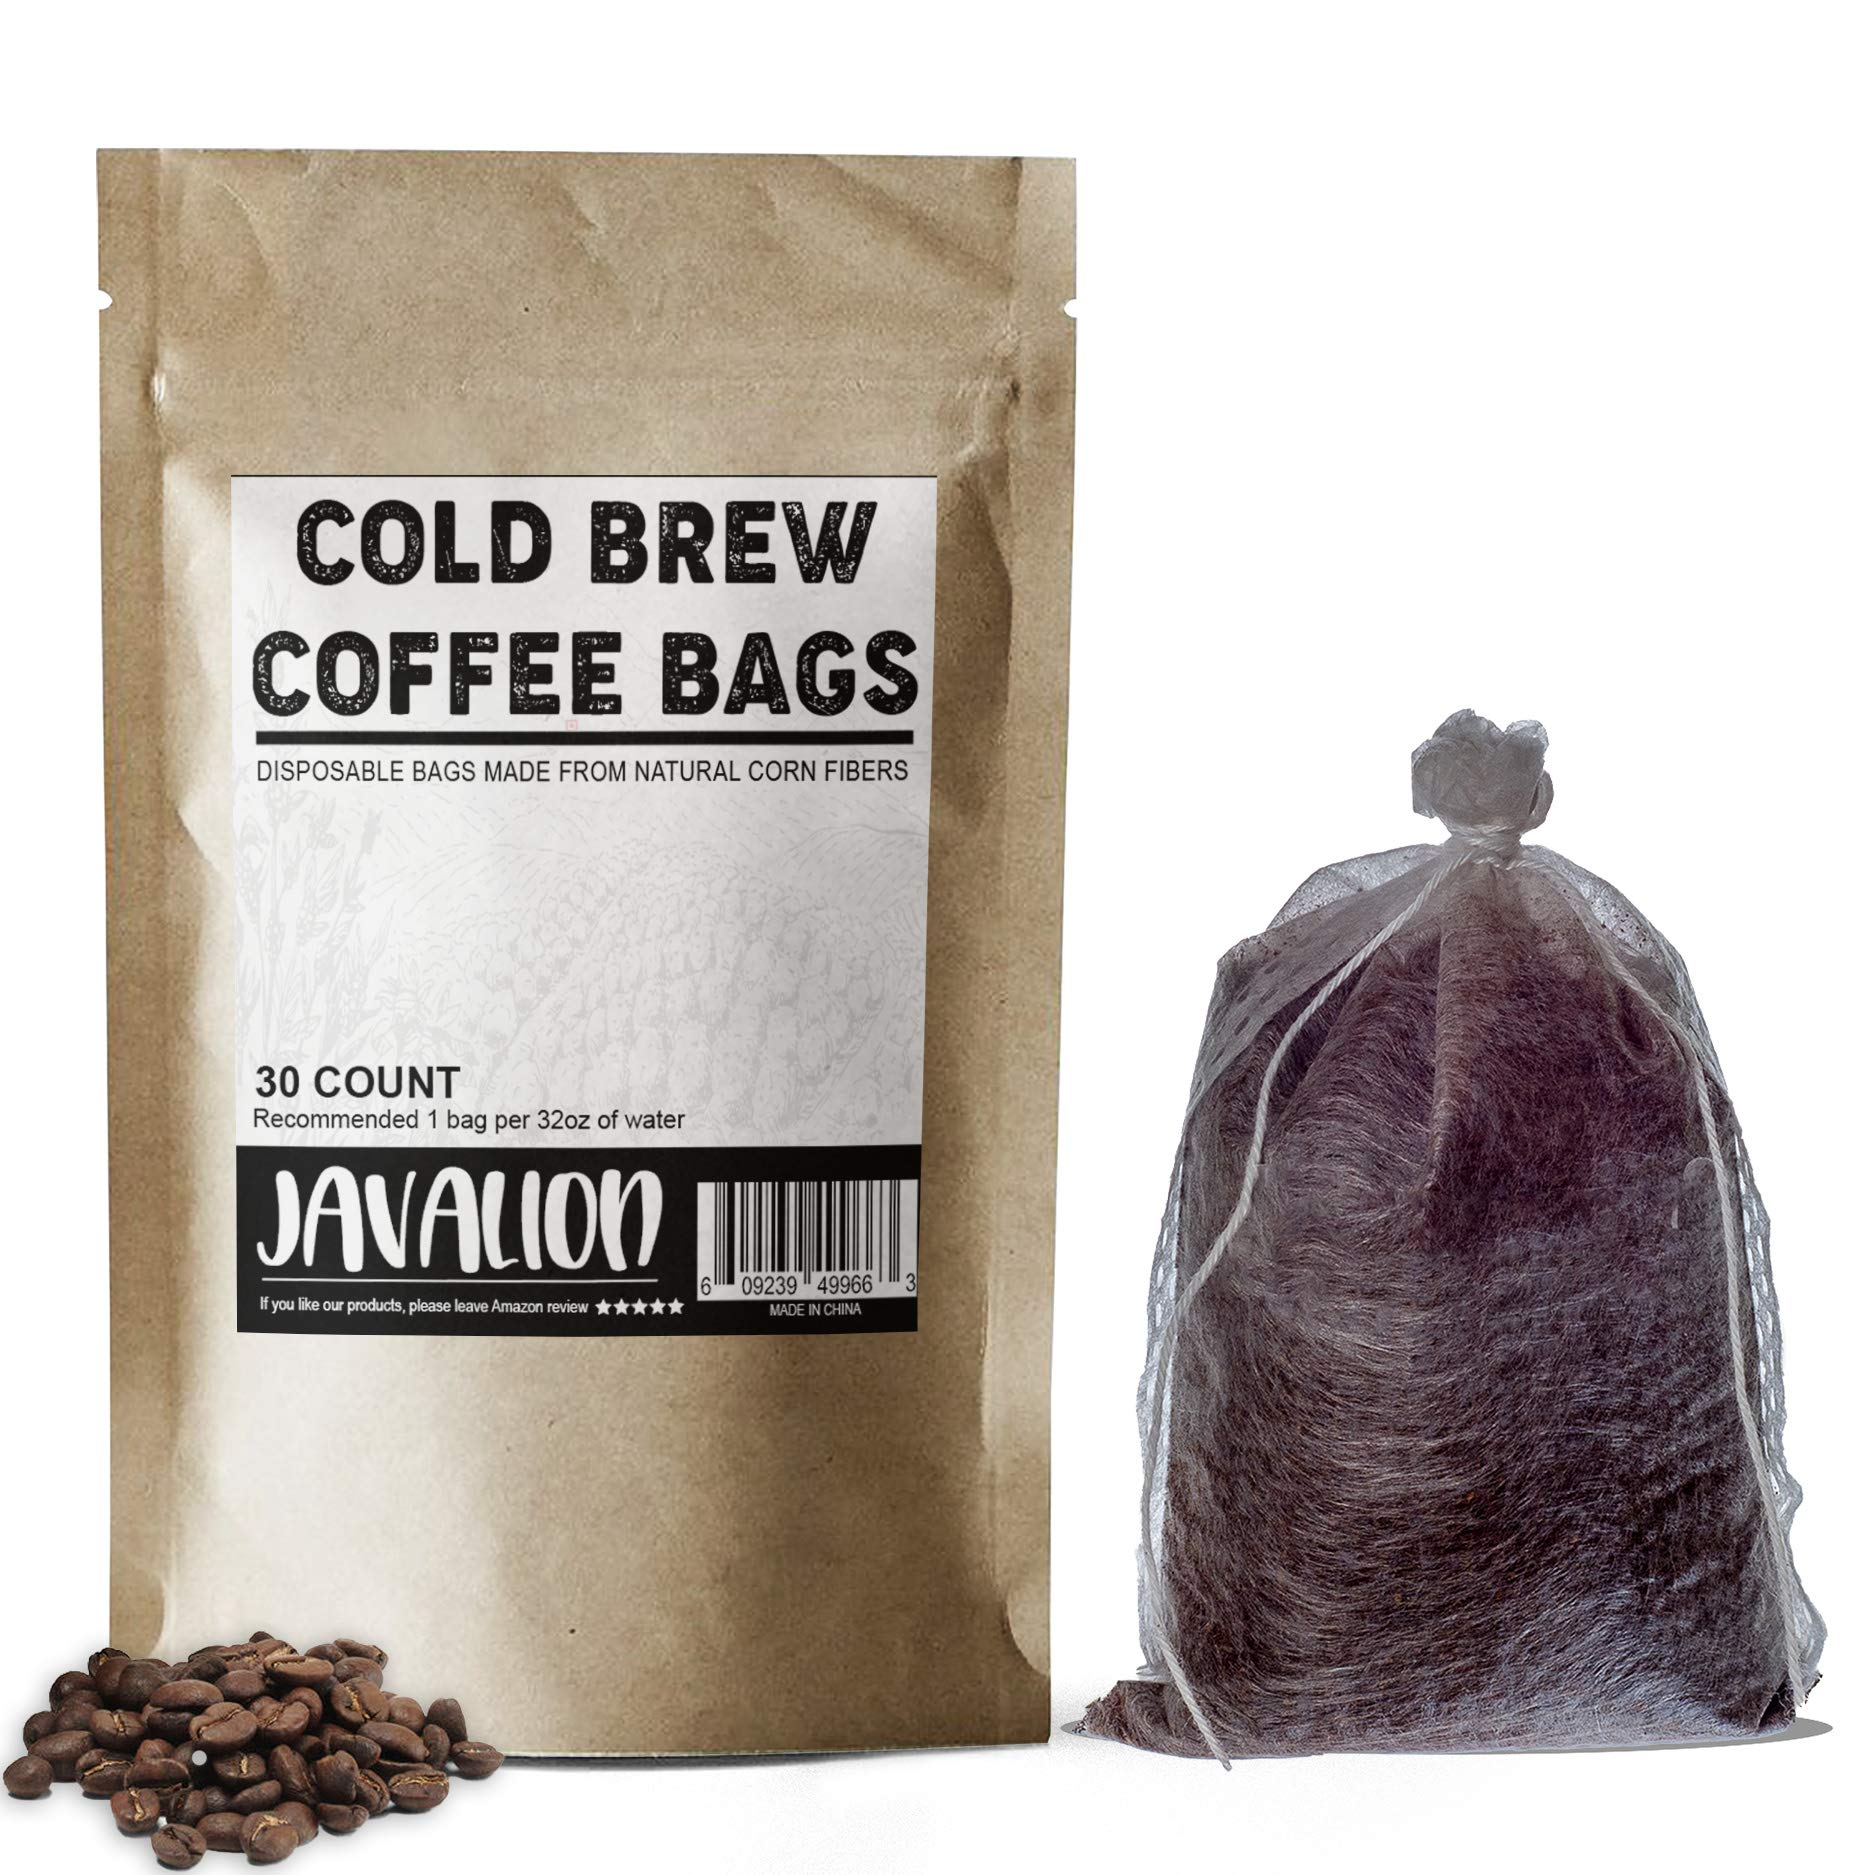 Cold Brew Coffee Bags – Easily Make Great Cold Brew Coffee at Home with JavaLion's All Natural Single-Use Cold Brew Coffee Filters. LARGE 4x6 in. Cold Brew Filters Fine Mesh Brewing Bags [30 COUNT]